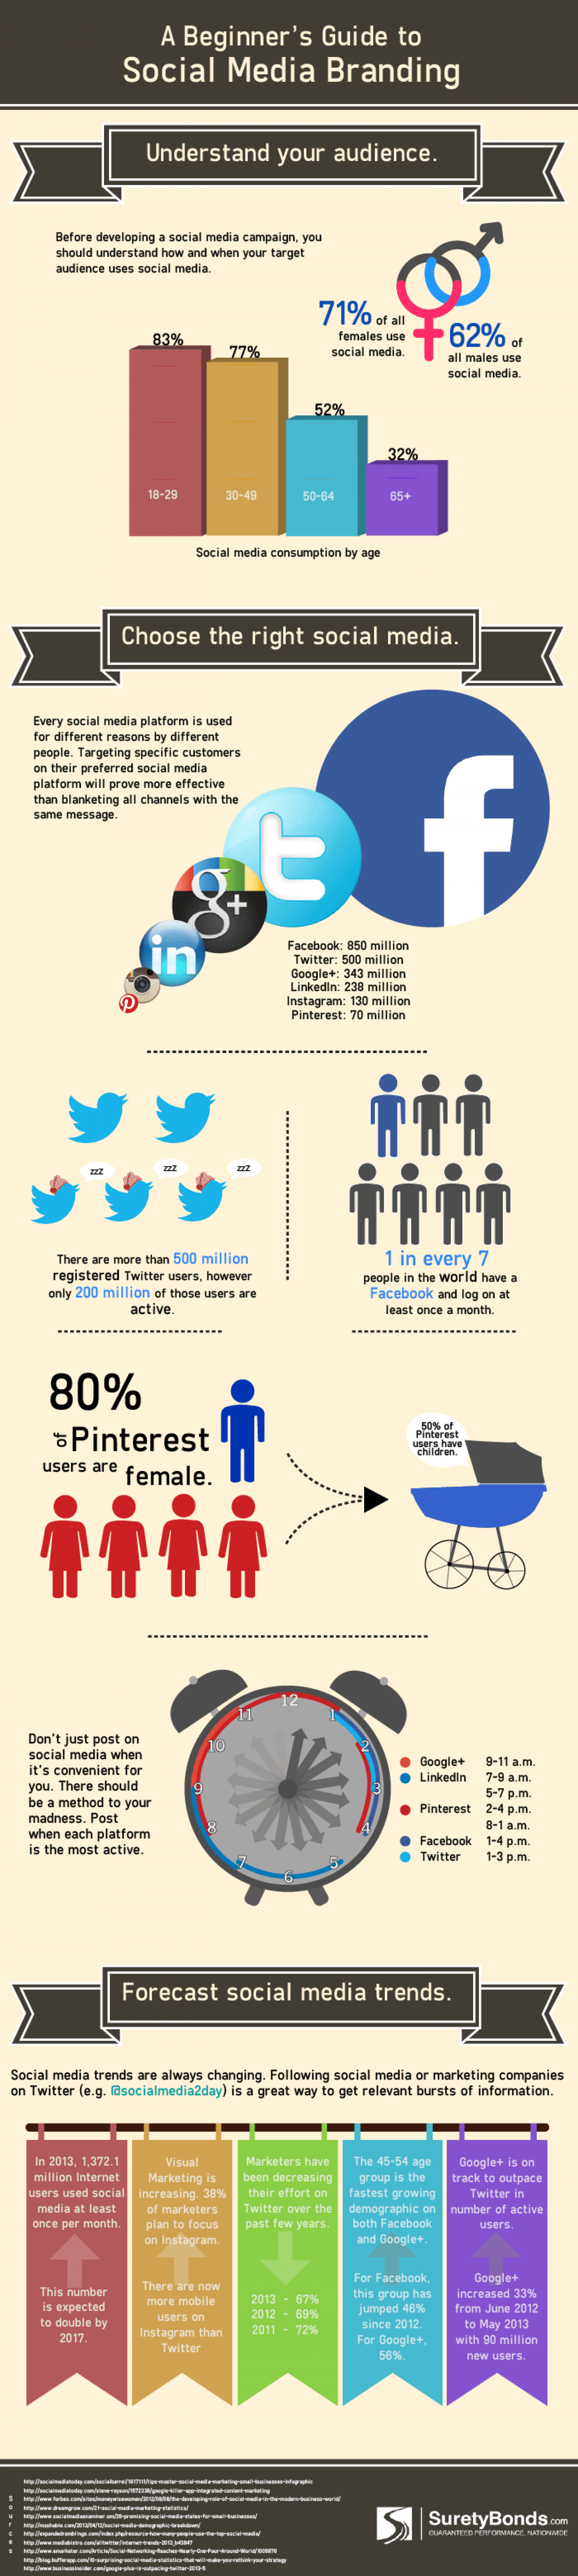 Beginner's Guide to Social Media Branding Infographic